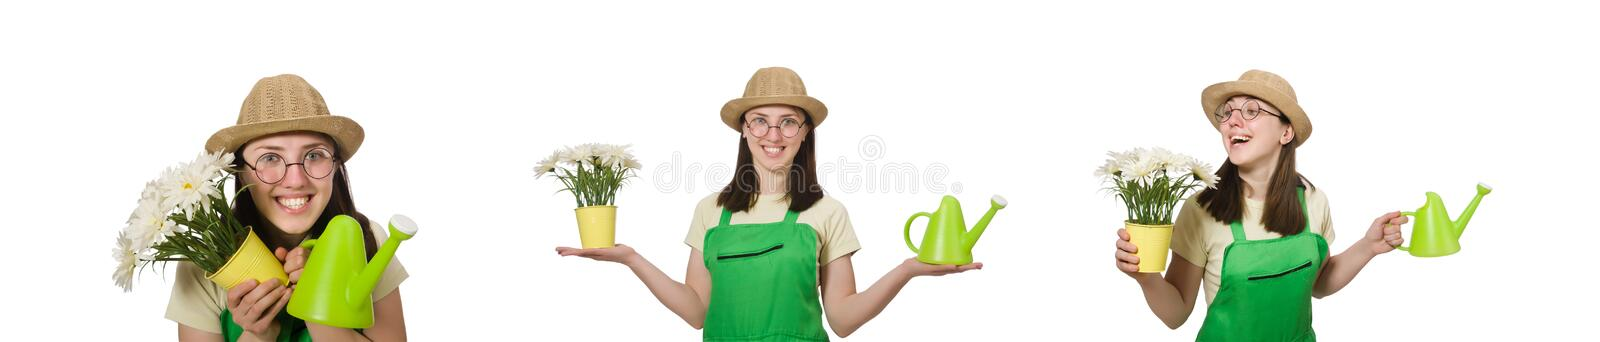 The girl watering plants on white stock photos